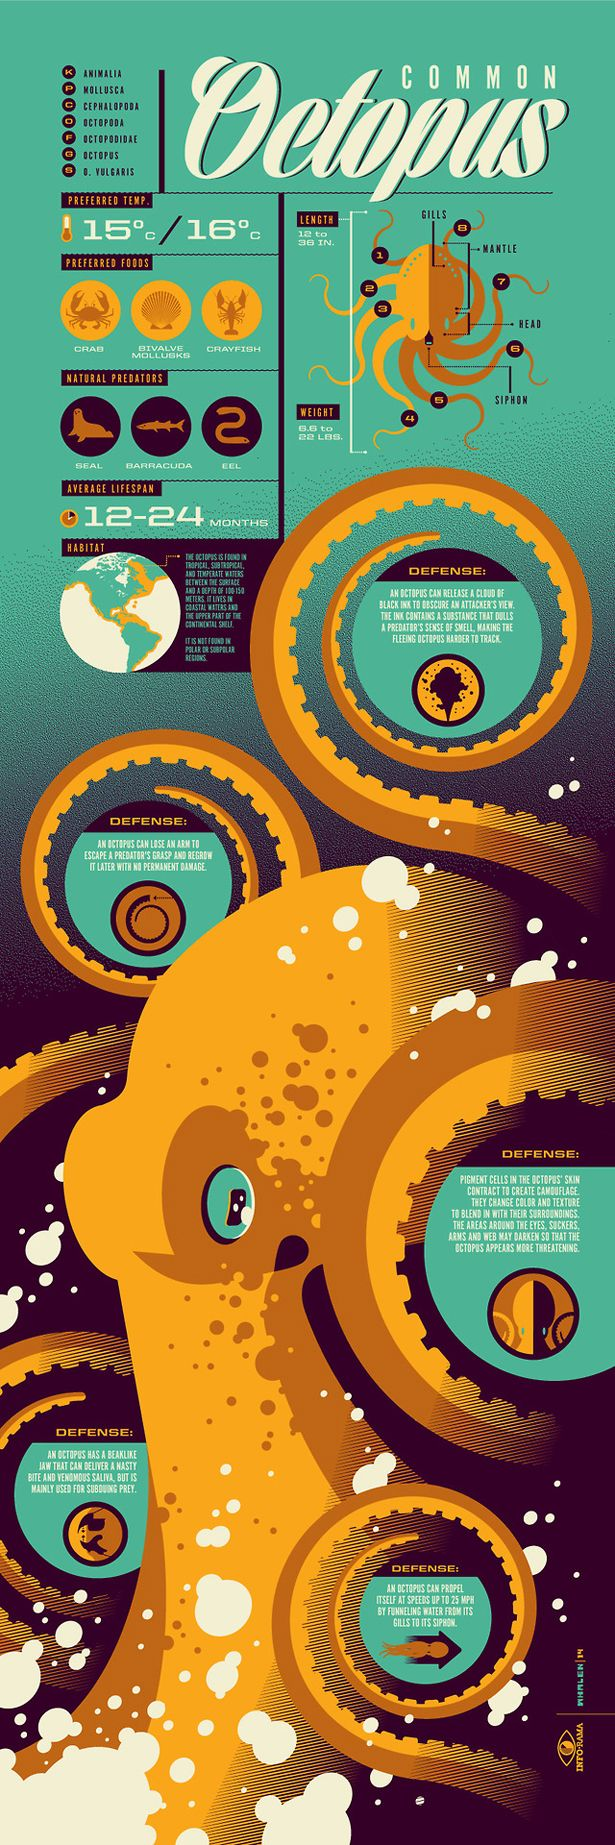 Stunning Infographic Art Series - Design - ShortList Magazine